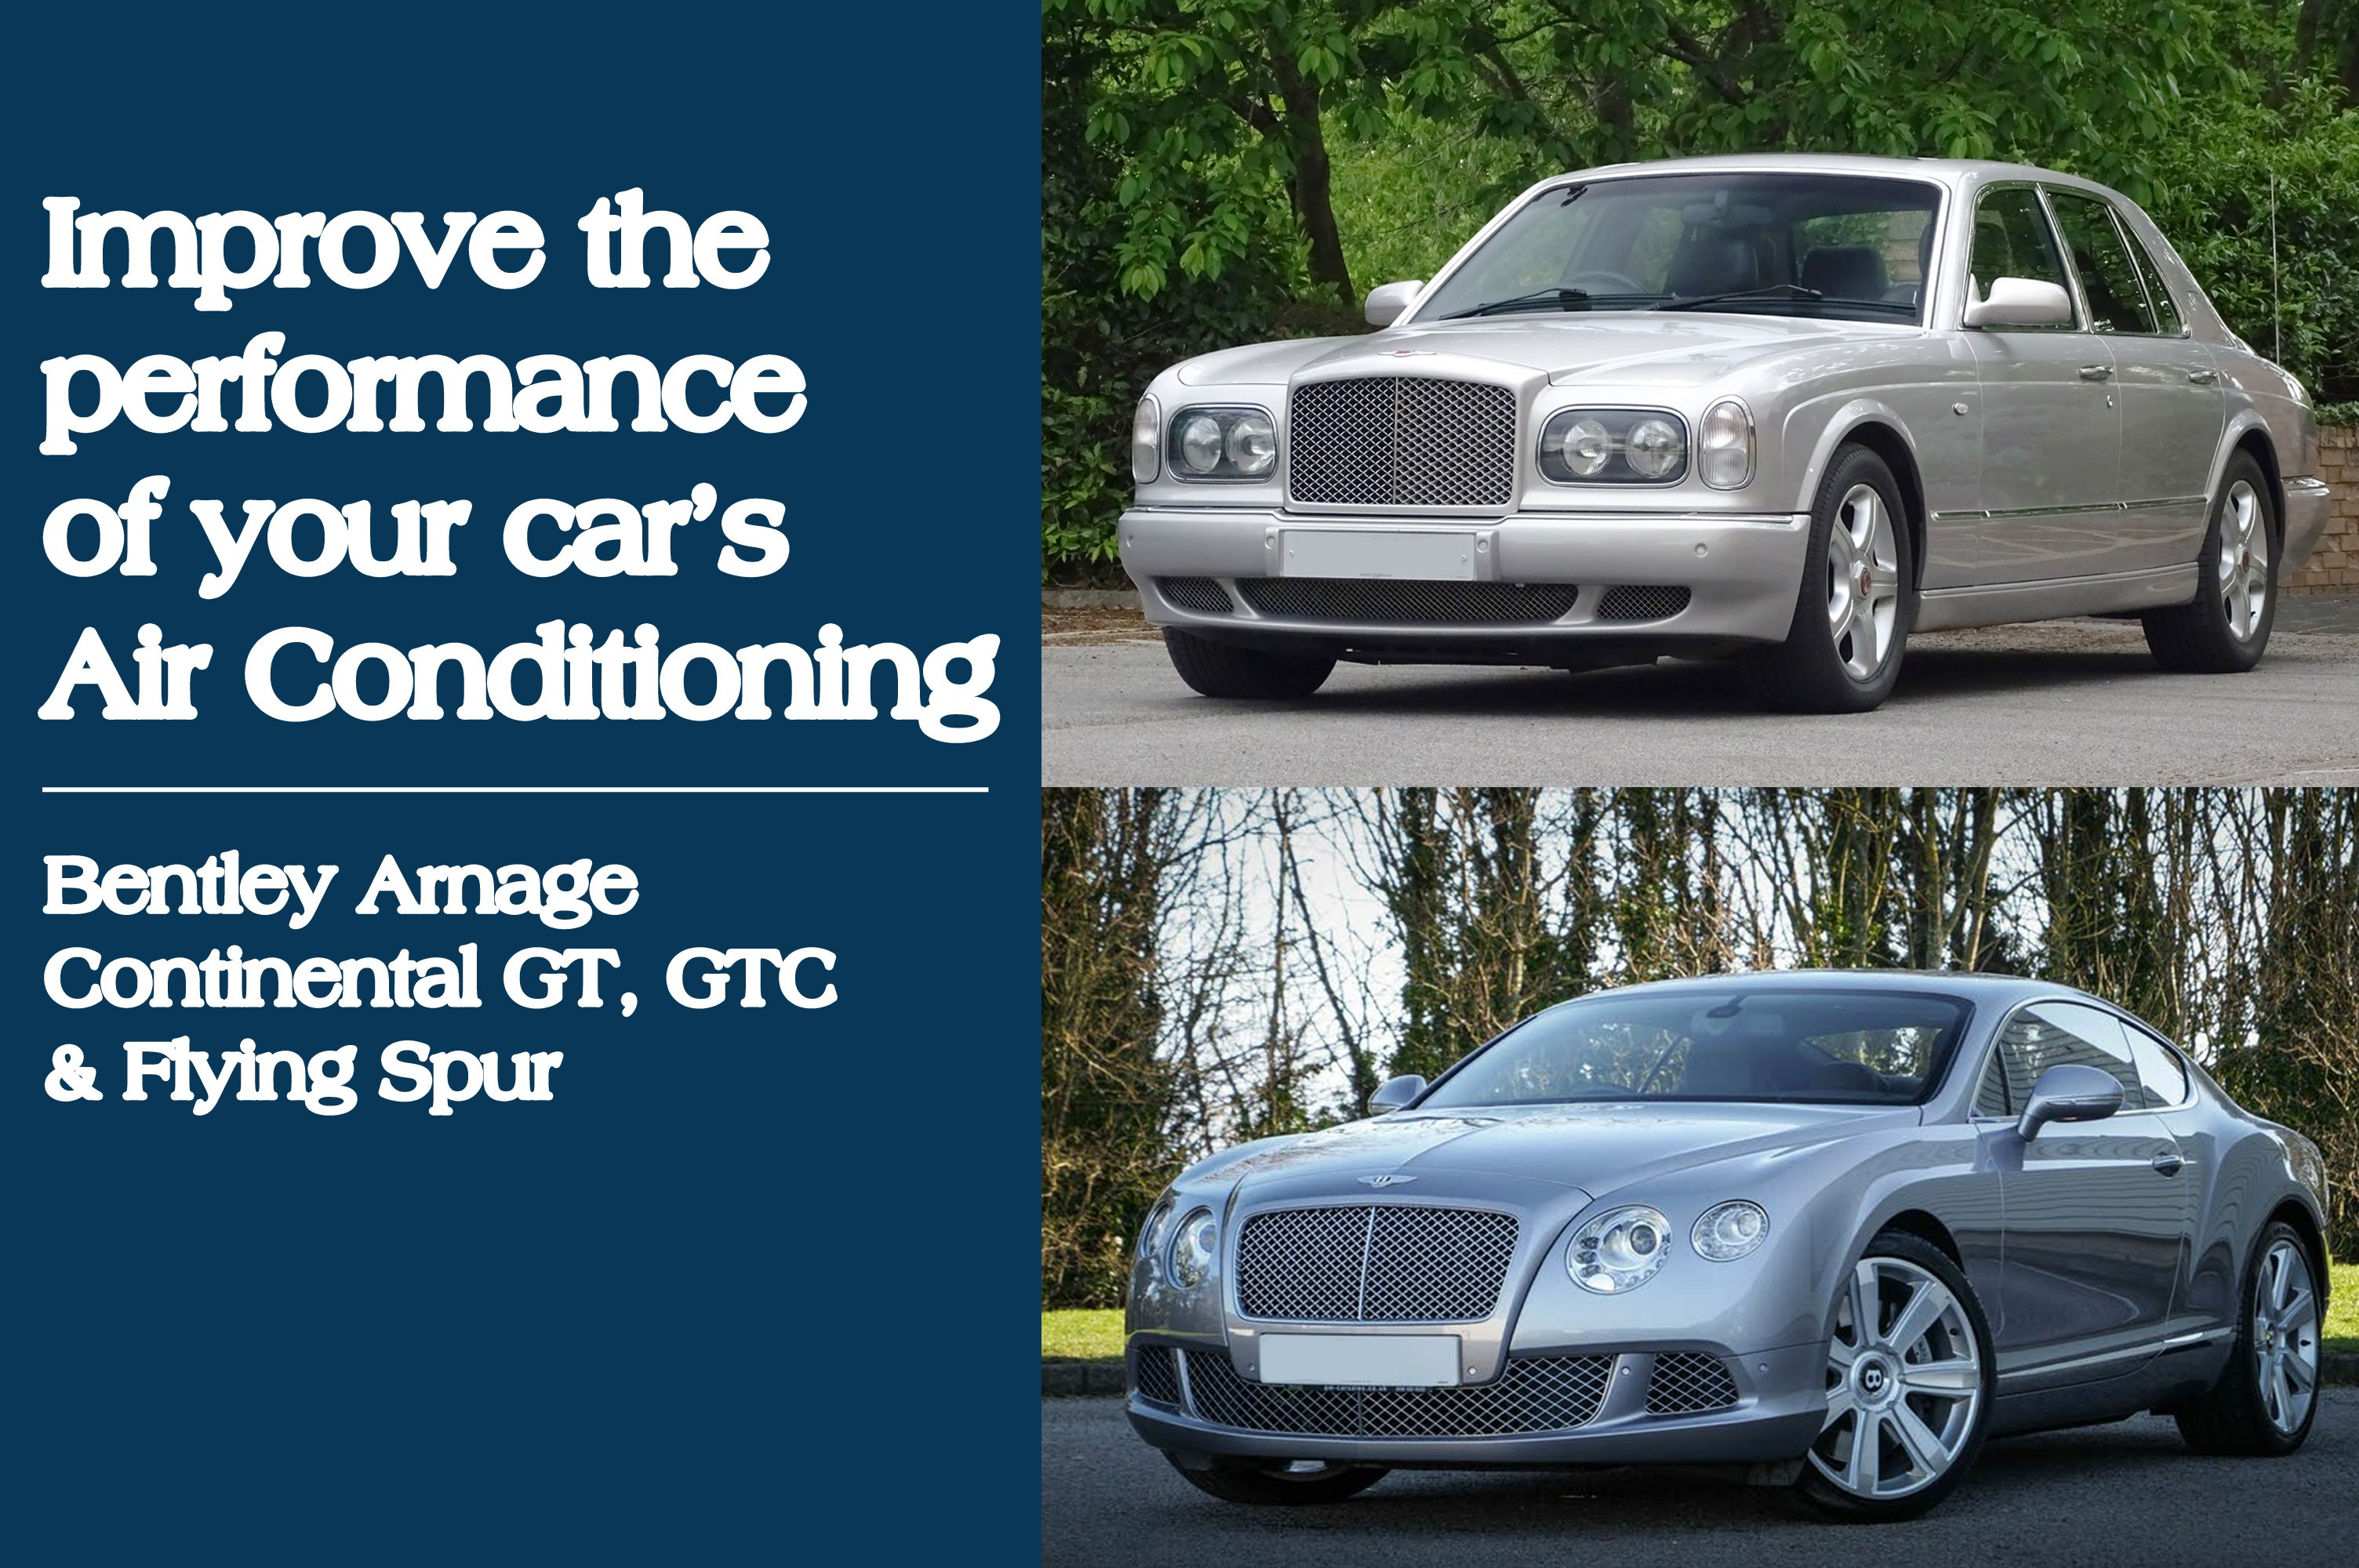 Bentley Arnage & Continental GT, GTC & Flying Spur Air Conditioning